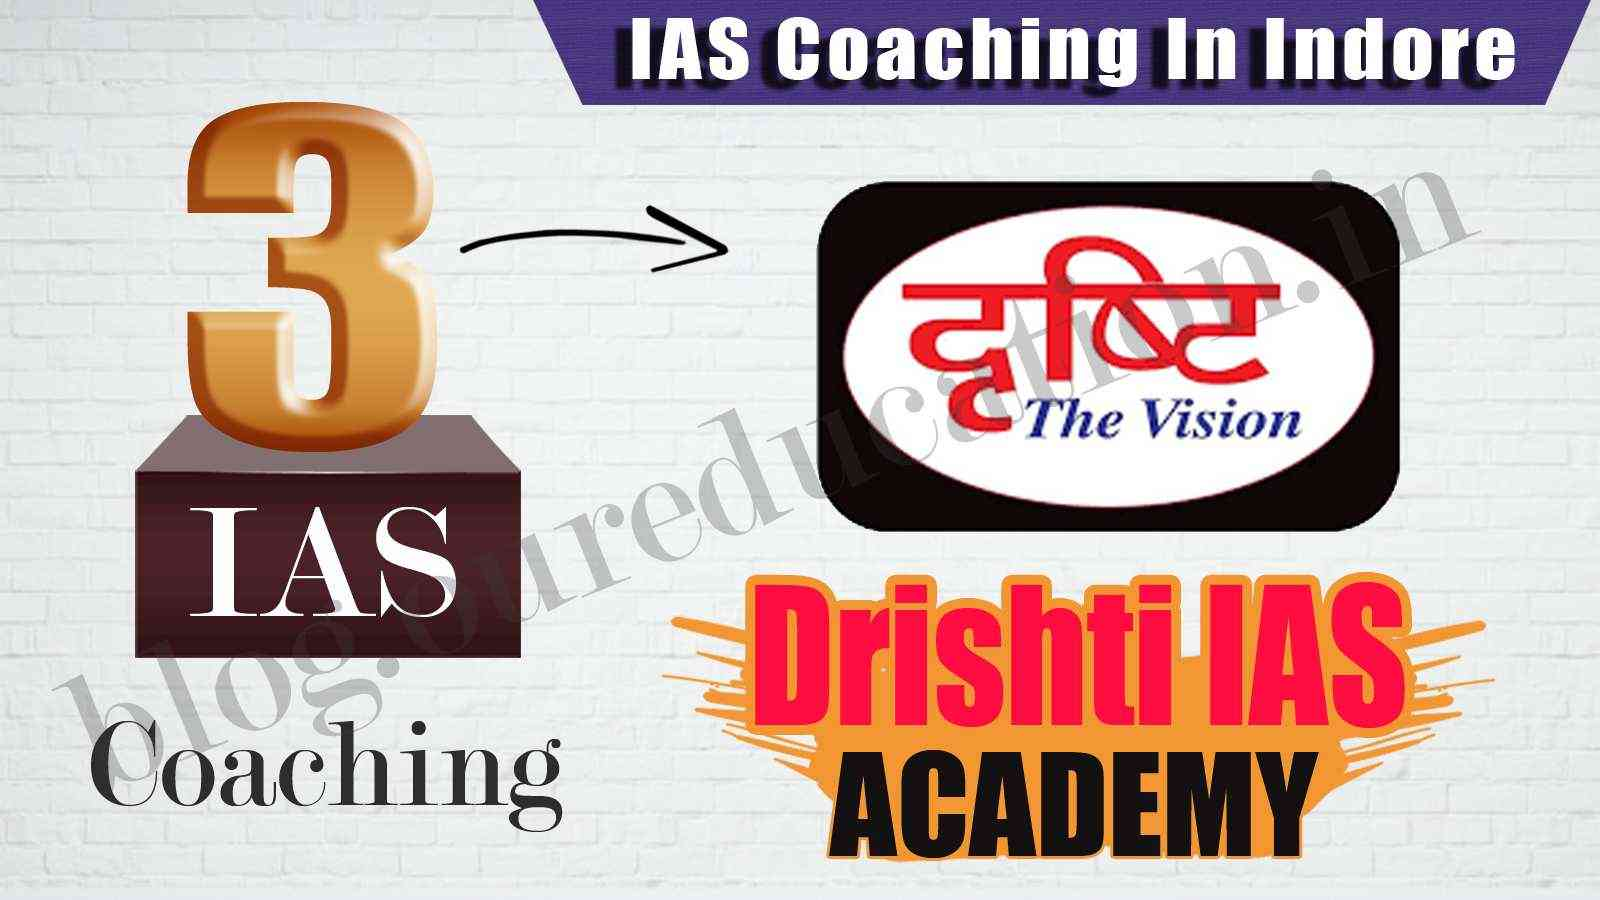 Top 10 IAS Coaching Institutes in Indore - UPSC Toppers Strategy